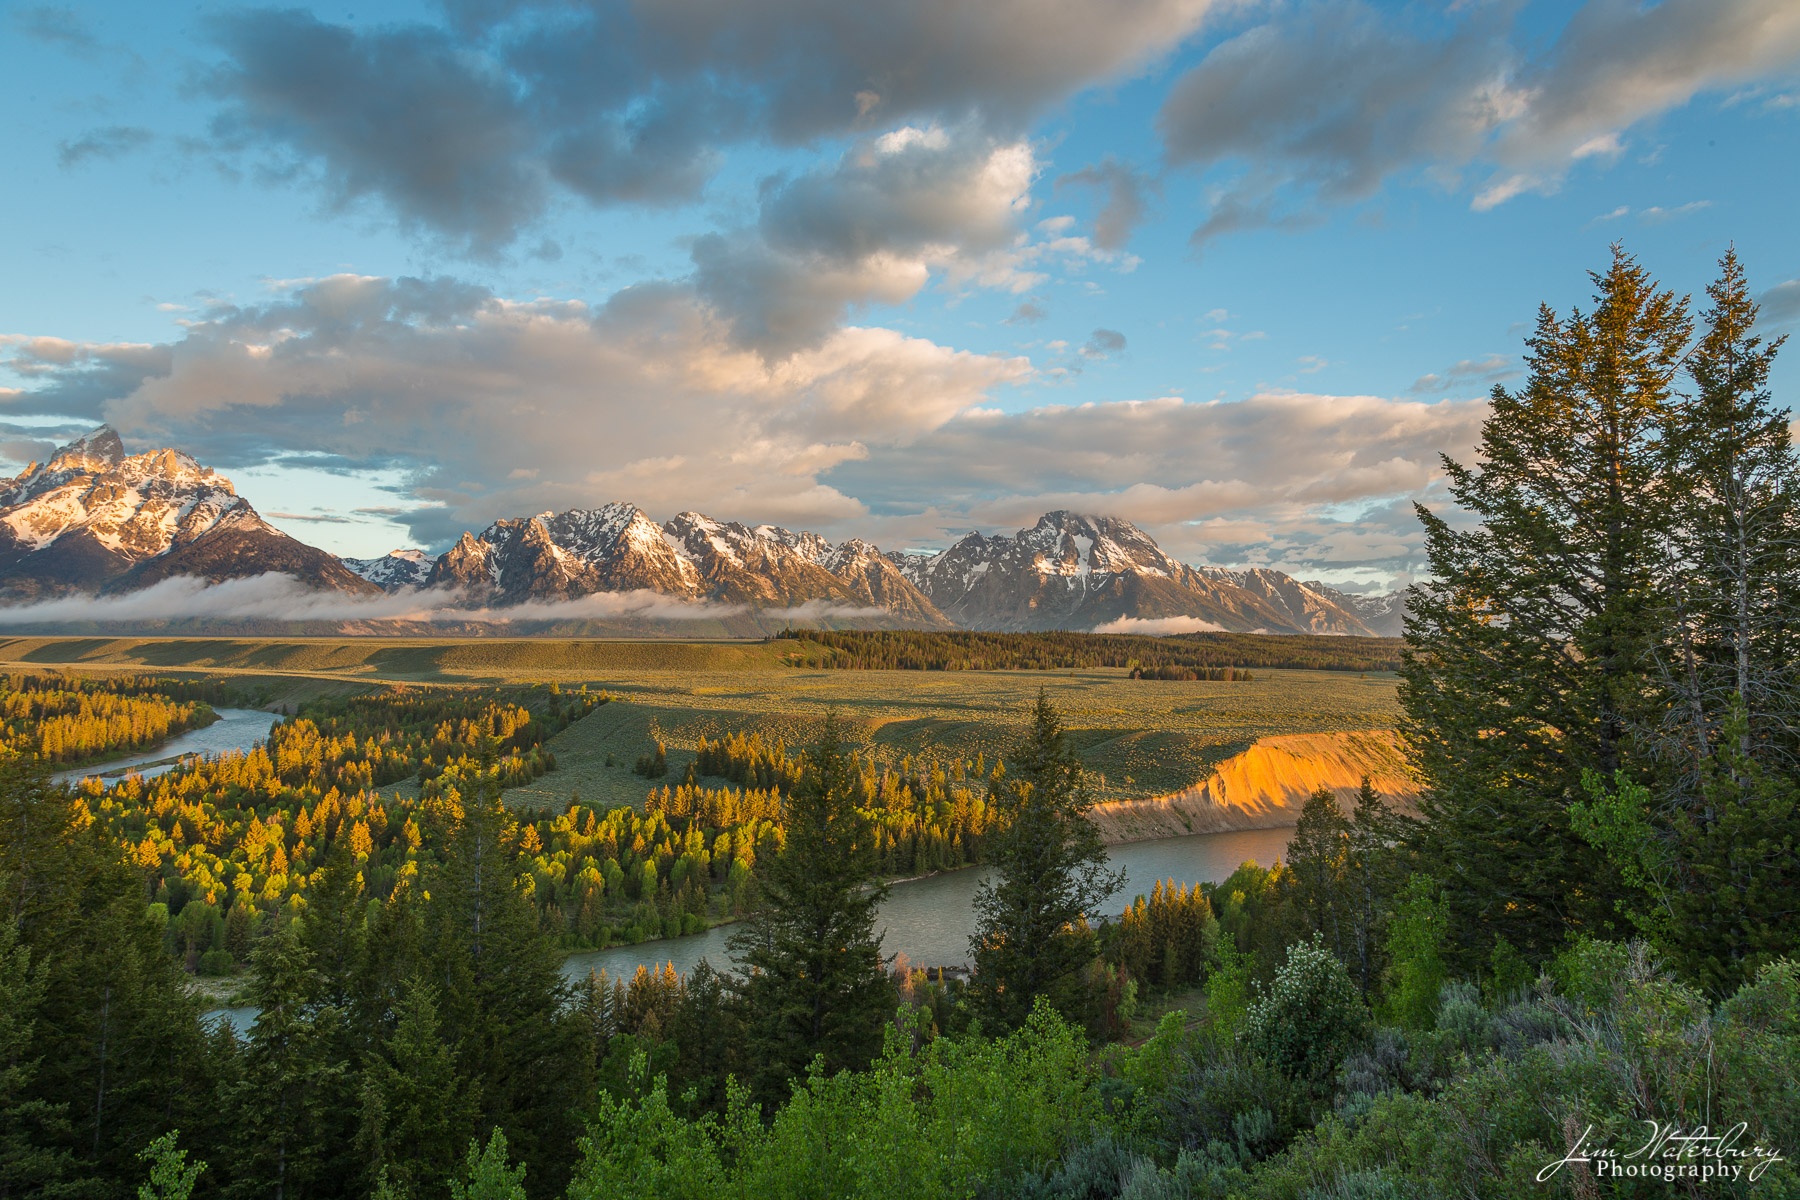 View of the Snake River and the Teton Mountains at sunrise. Teton National Park.